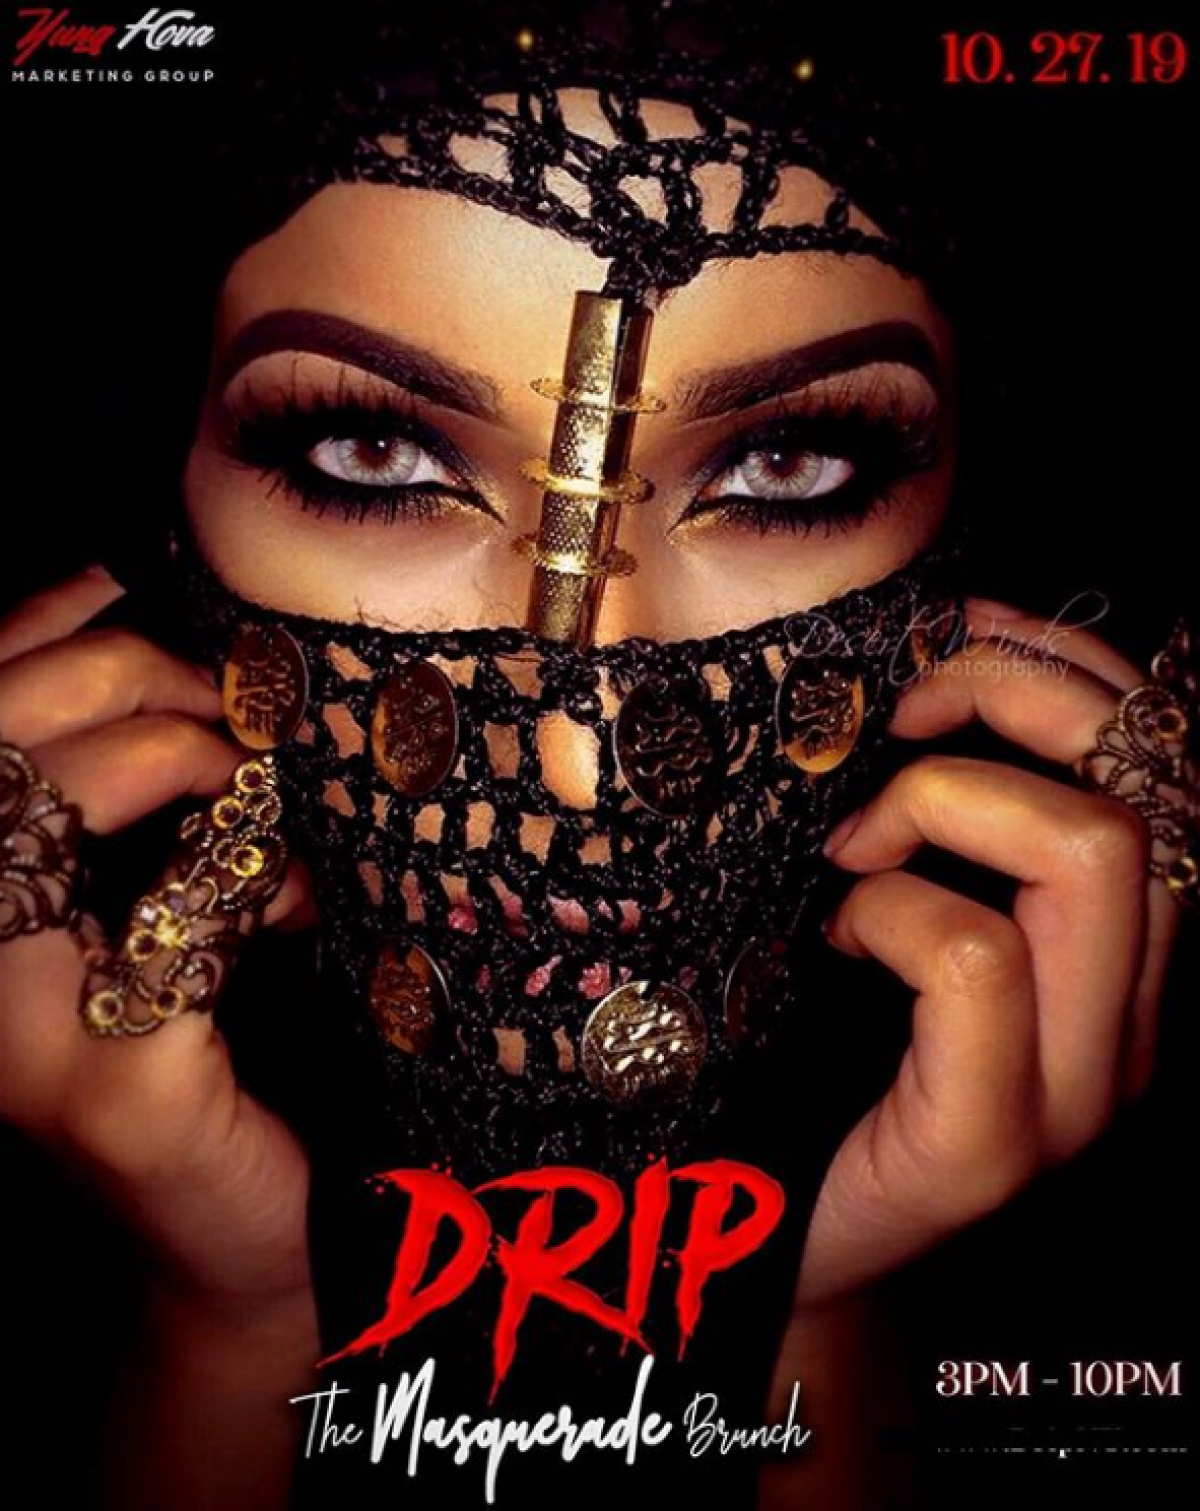 Drip flyer or graphic.